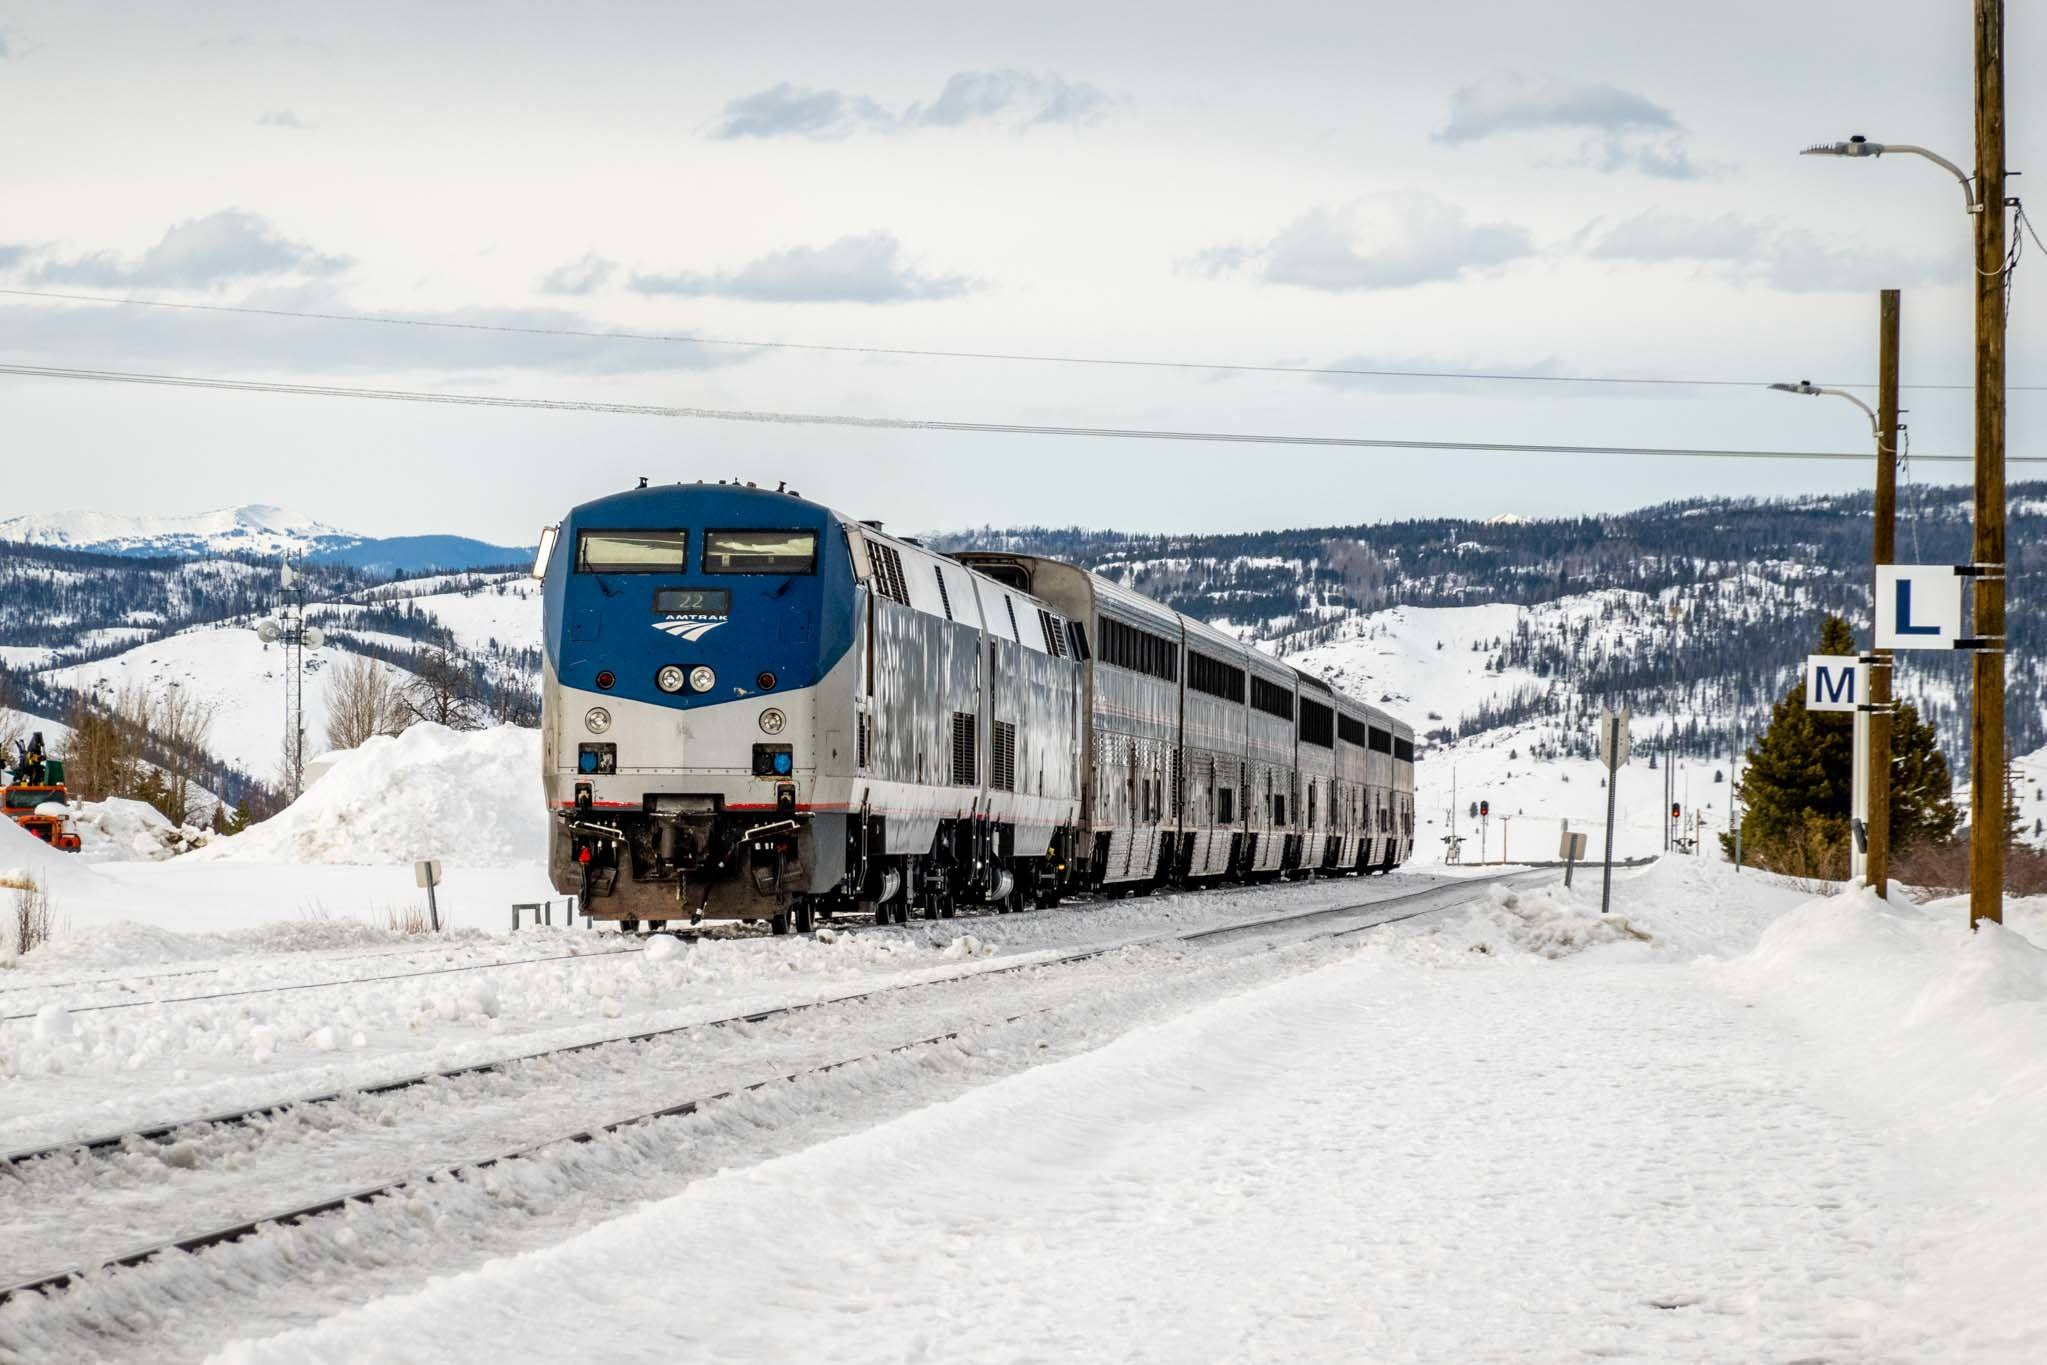 The Winter Park Express Ski Train in the snow